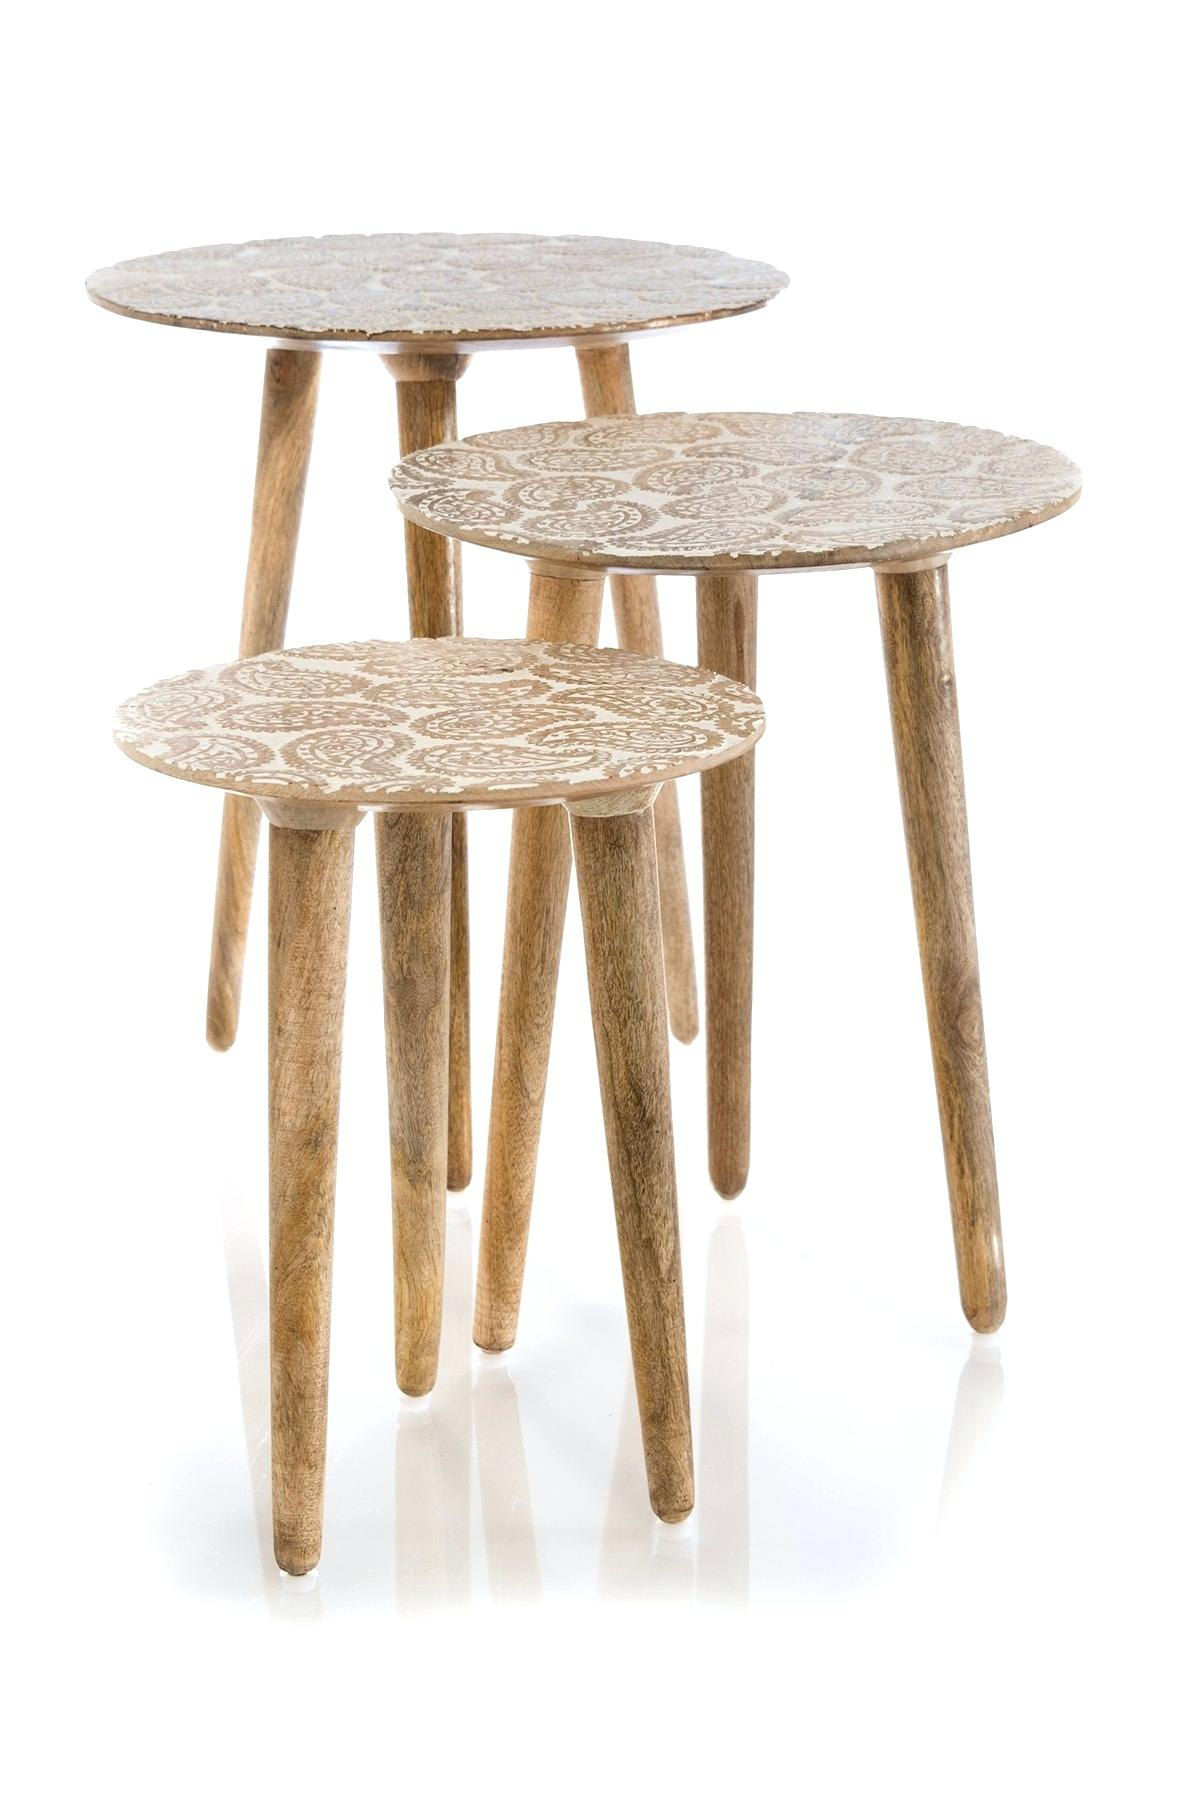 sidetables side table set tables glass coffee end accent rack tuscany piece nesting outdoor wicker chair and with one drawer leaf round linen tablecloth bunnings timber furniture